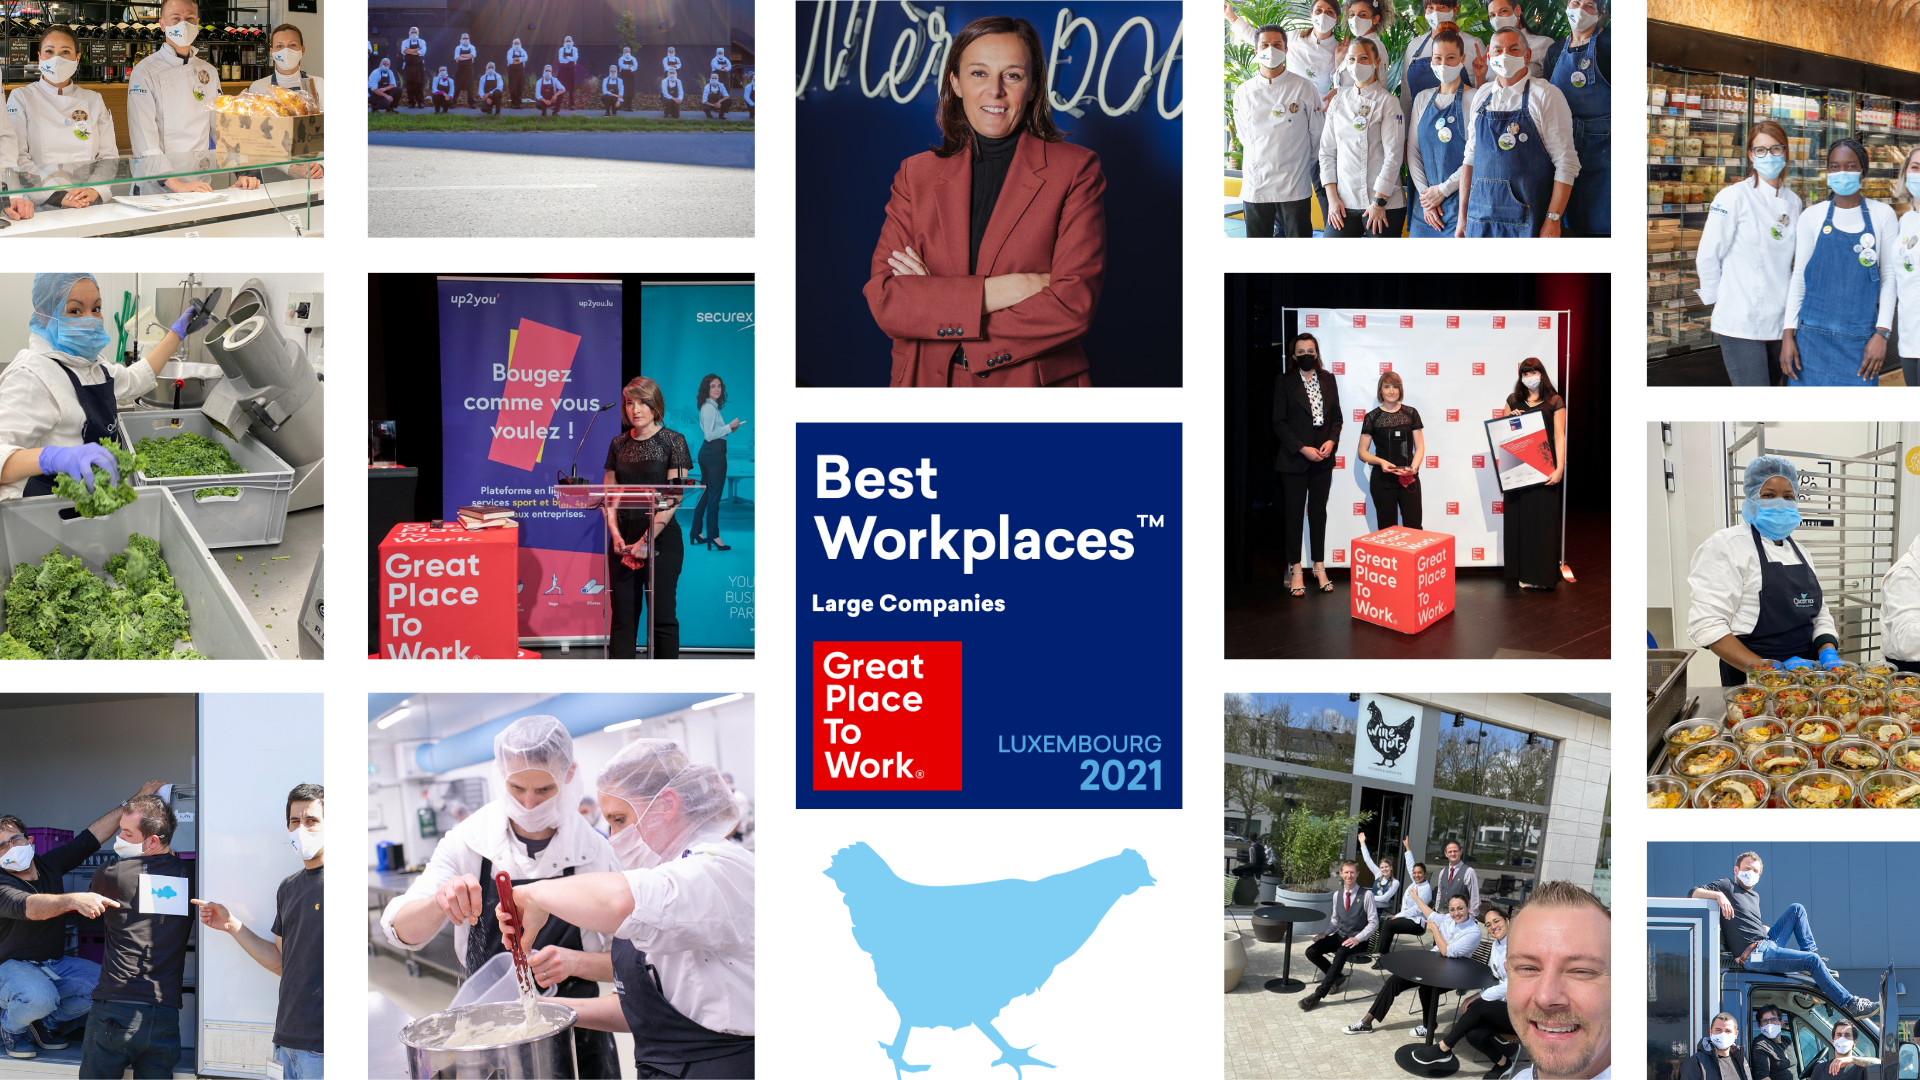 Great places to work